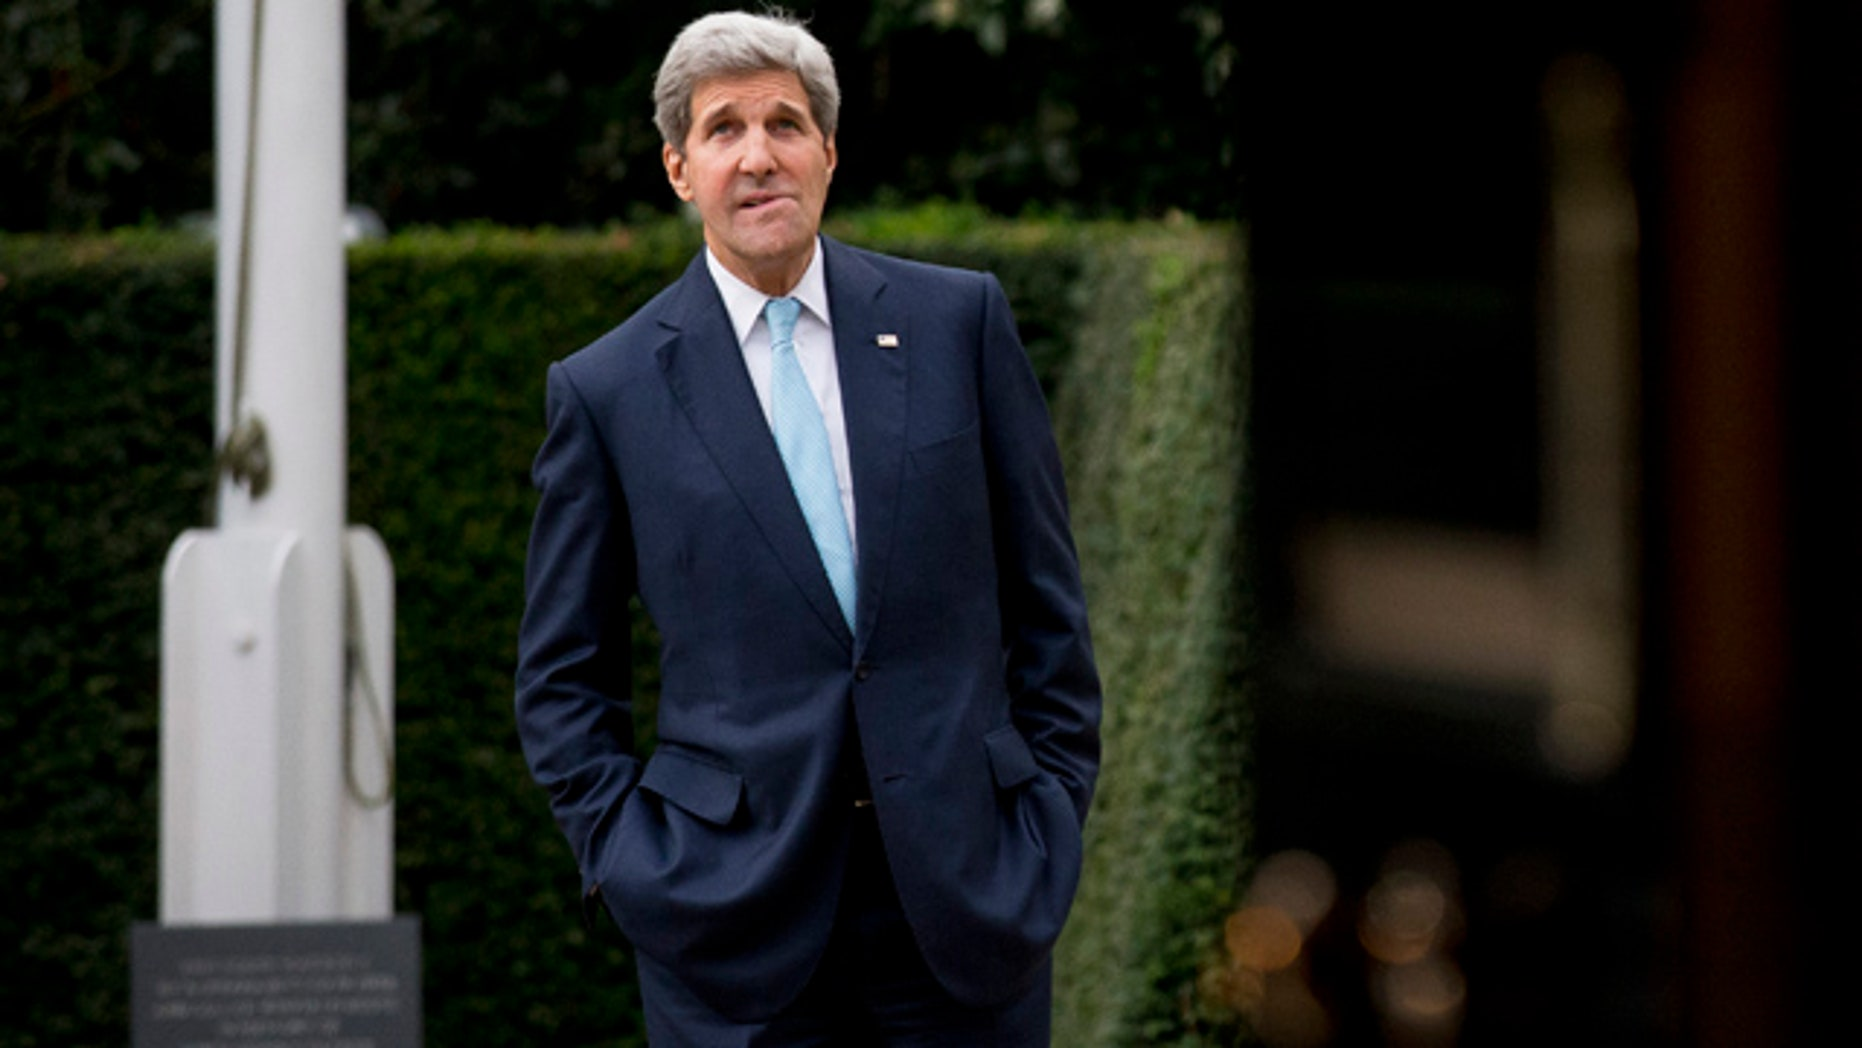 November 18, 2014: U.S. Secretary of State John Kerry waits for the arrival of Oman Foreign Minister Yusuf Bin Alawi bin Abdullah for their meeting at the official residence of the U.S. ambassador to Britain, Winfield House, in London.  (AP Photo/Matt Dunham)